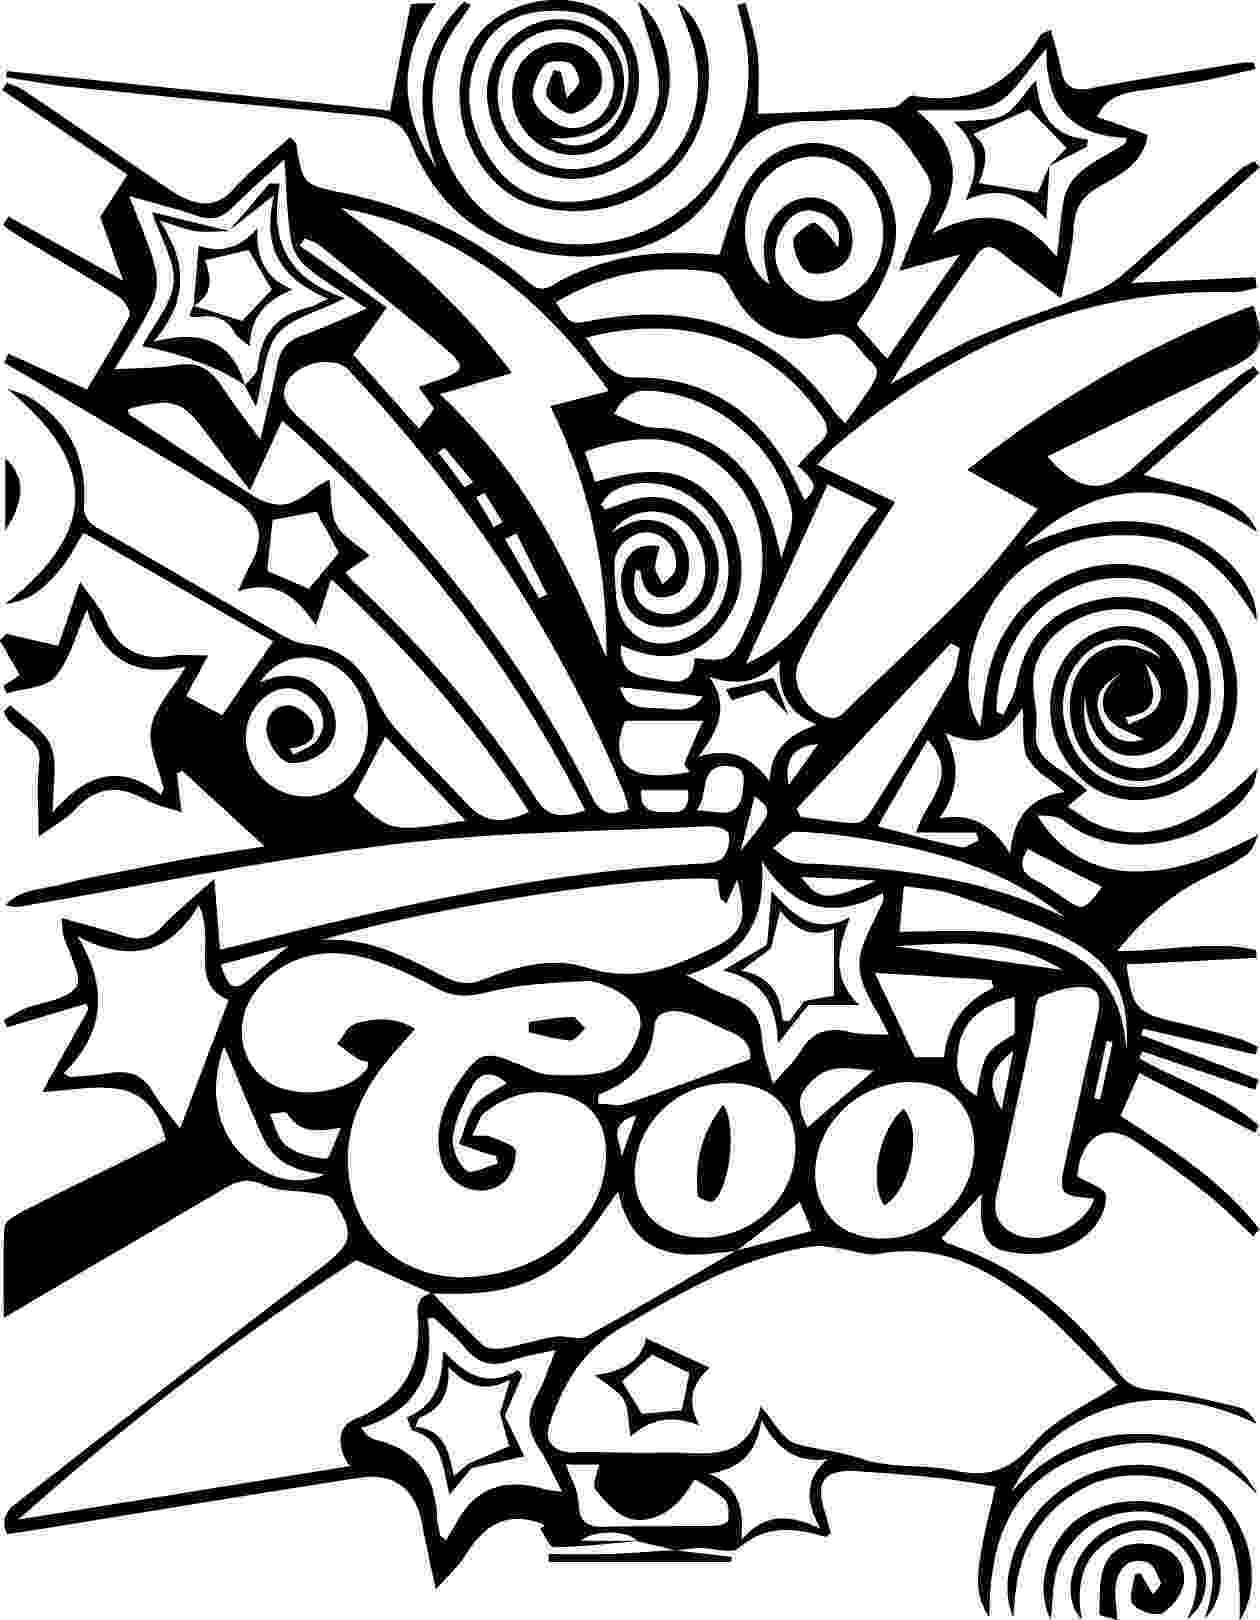 full page printable coloring pages kids page spongebob coloring pages for kids printable full coloring page pages